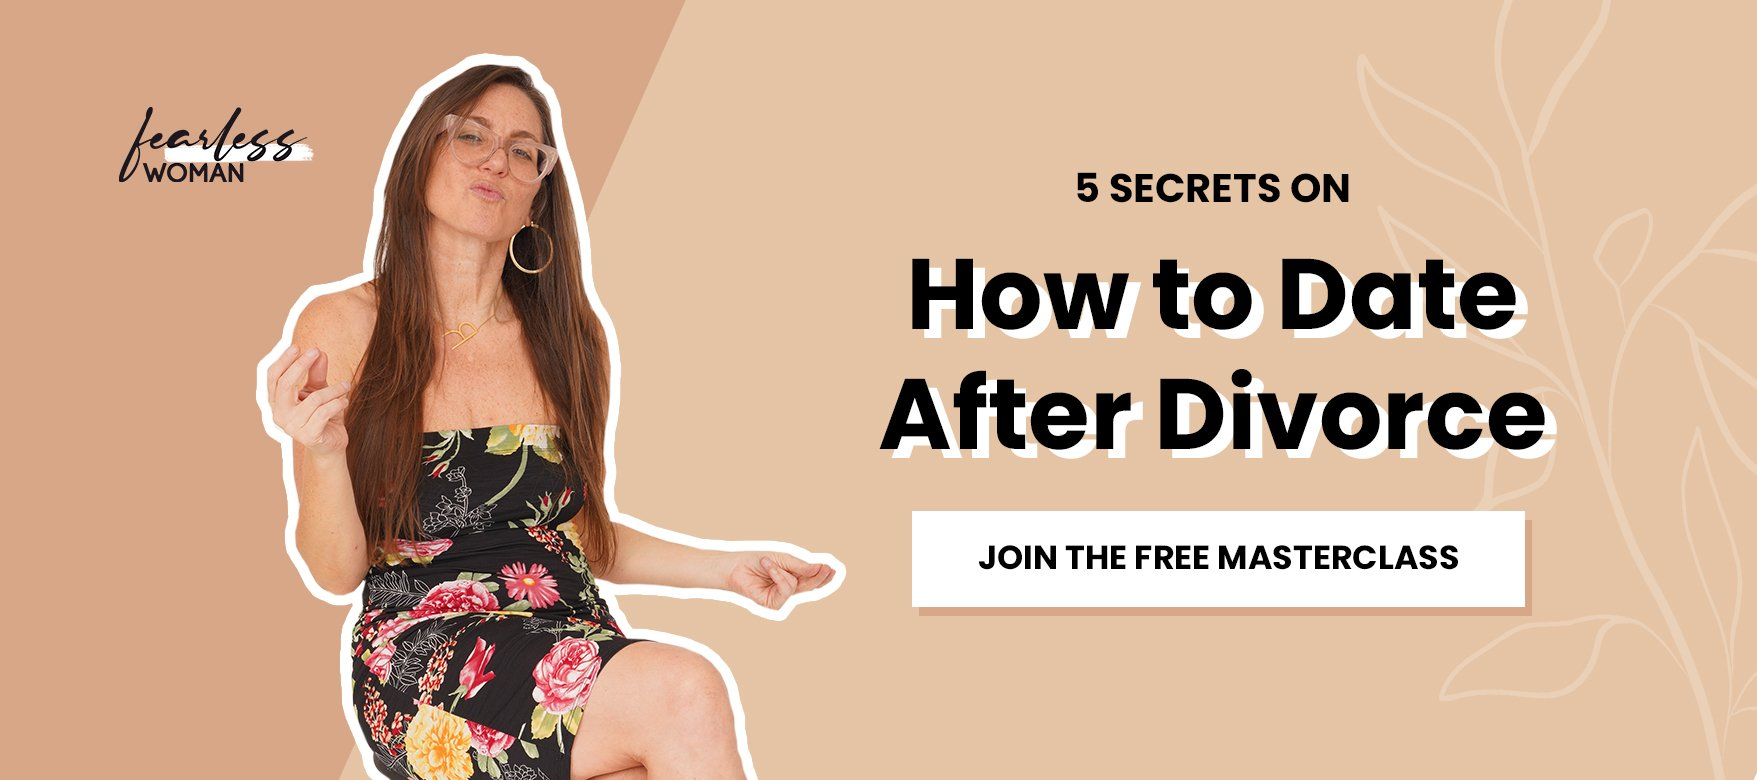 How to Date After Divorce?